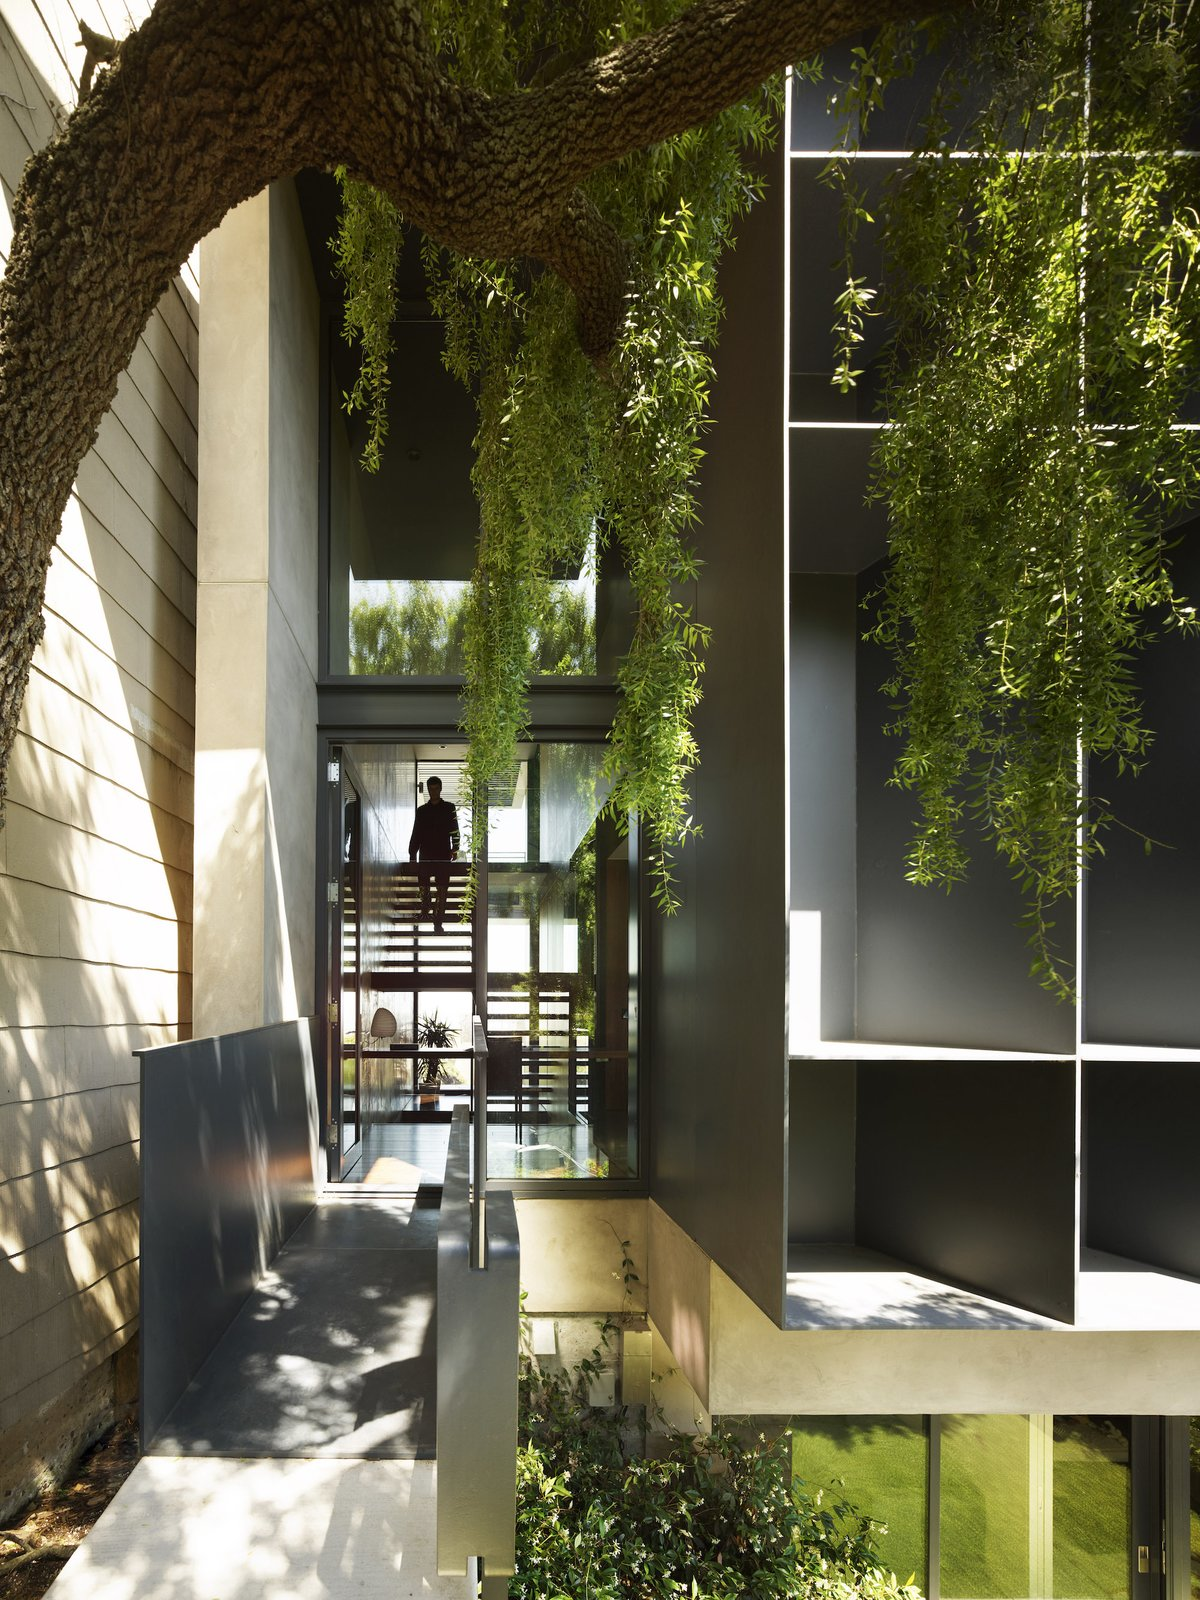 Exterior of Terrace House by Aidlin Darling Design.